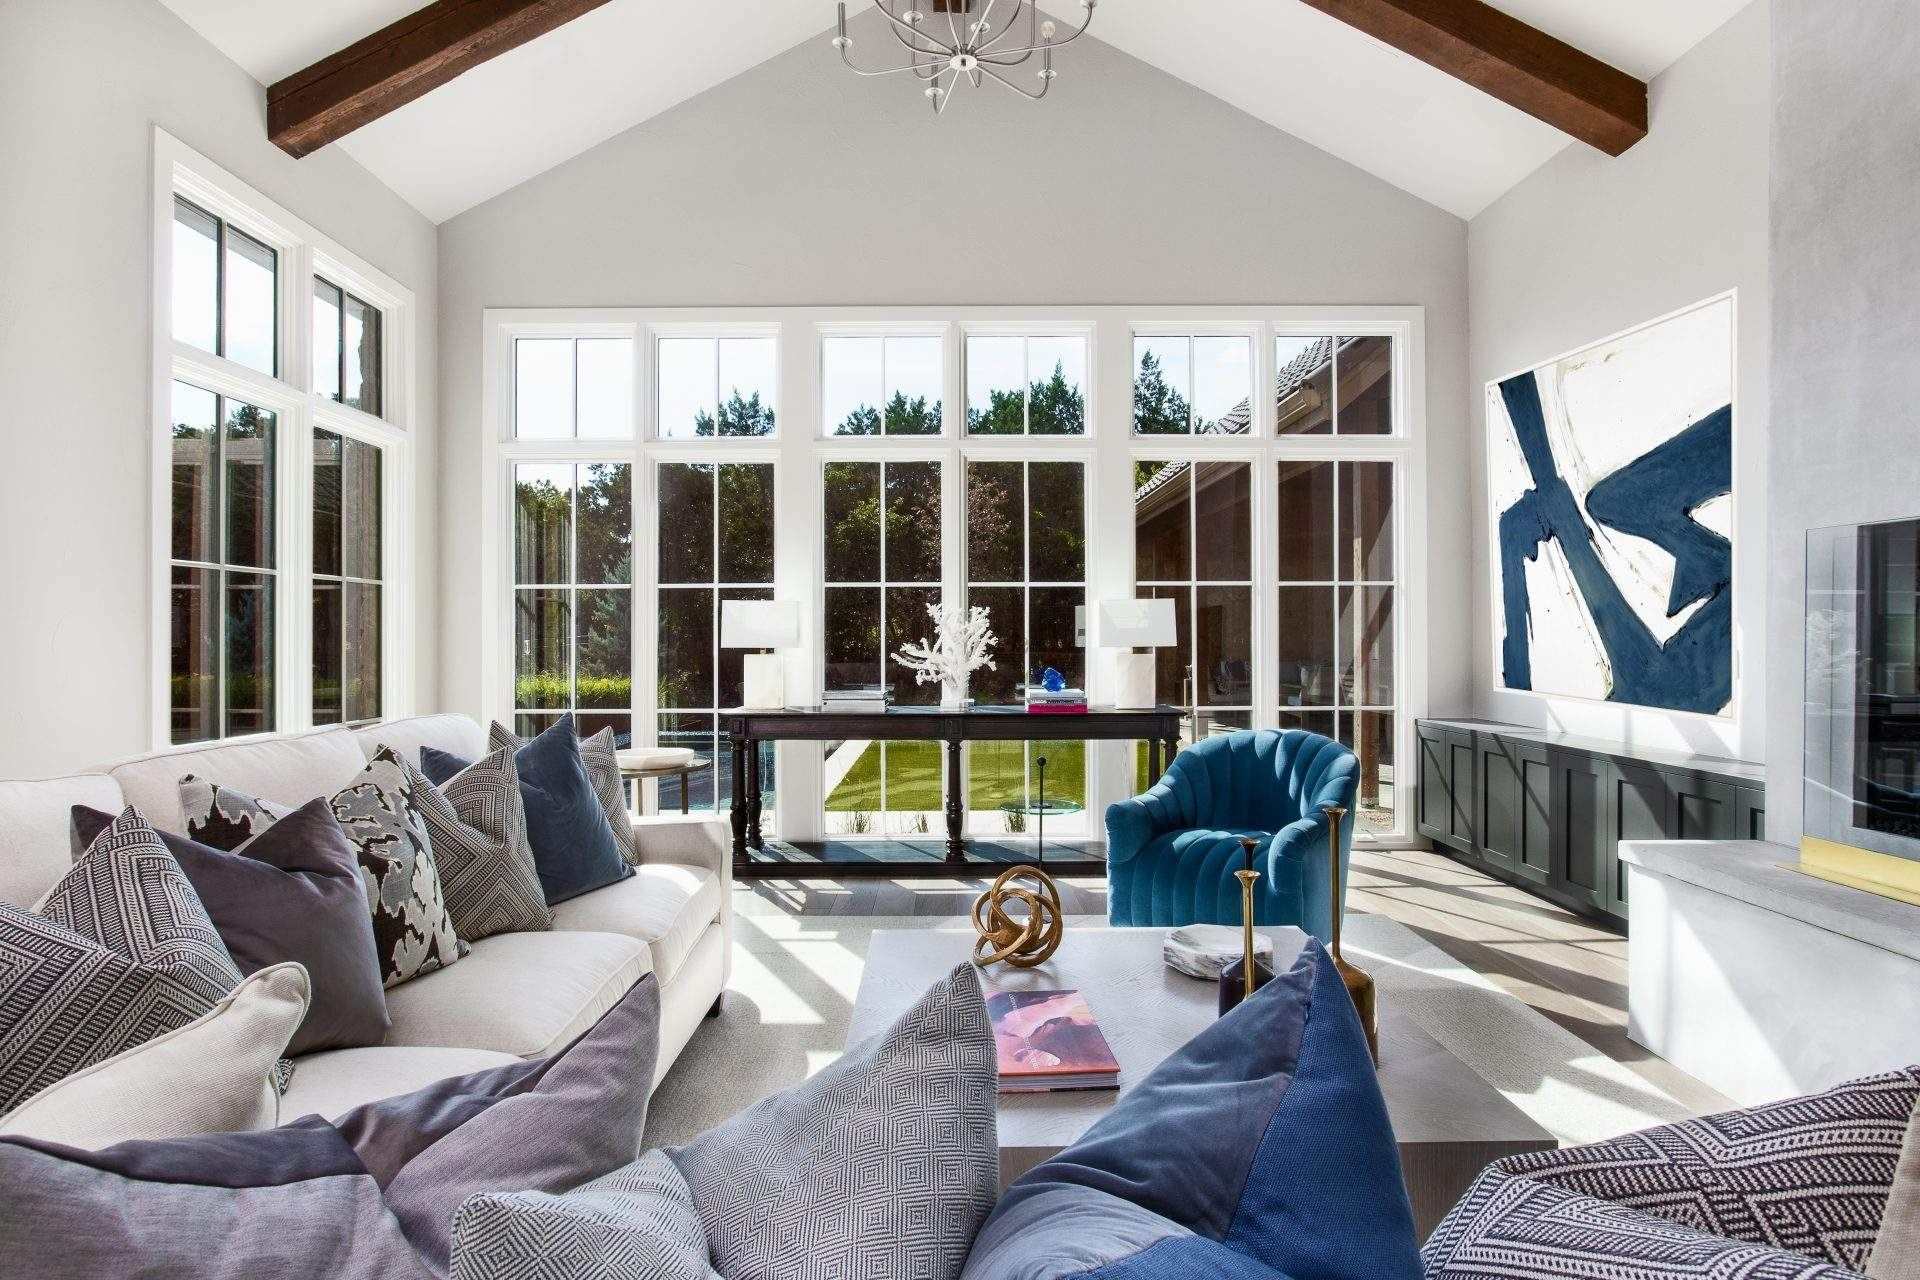 Etch Design Group - a remodel in Barton Creek with ample natural light and a light color palate and blue accents.